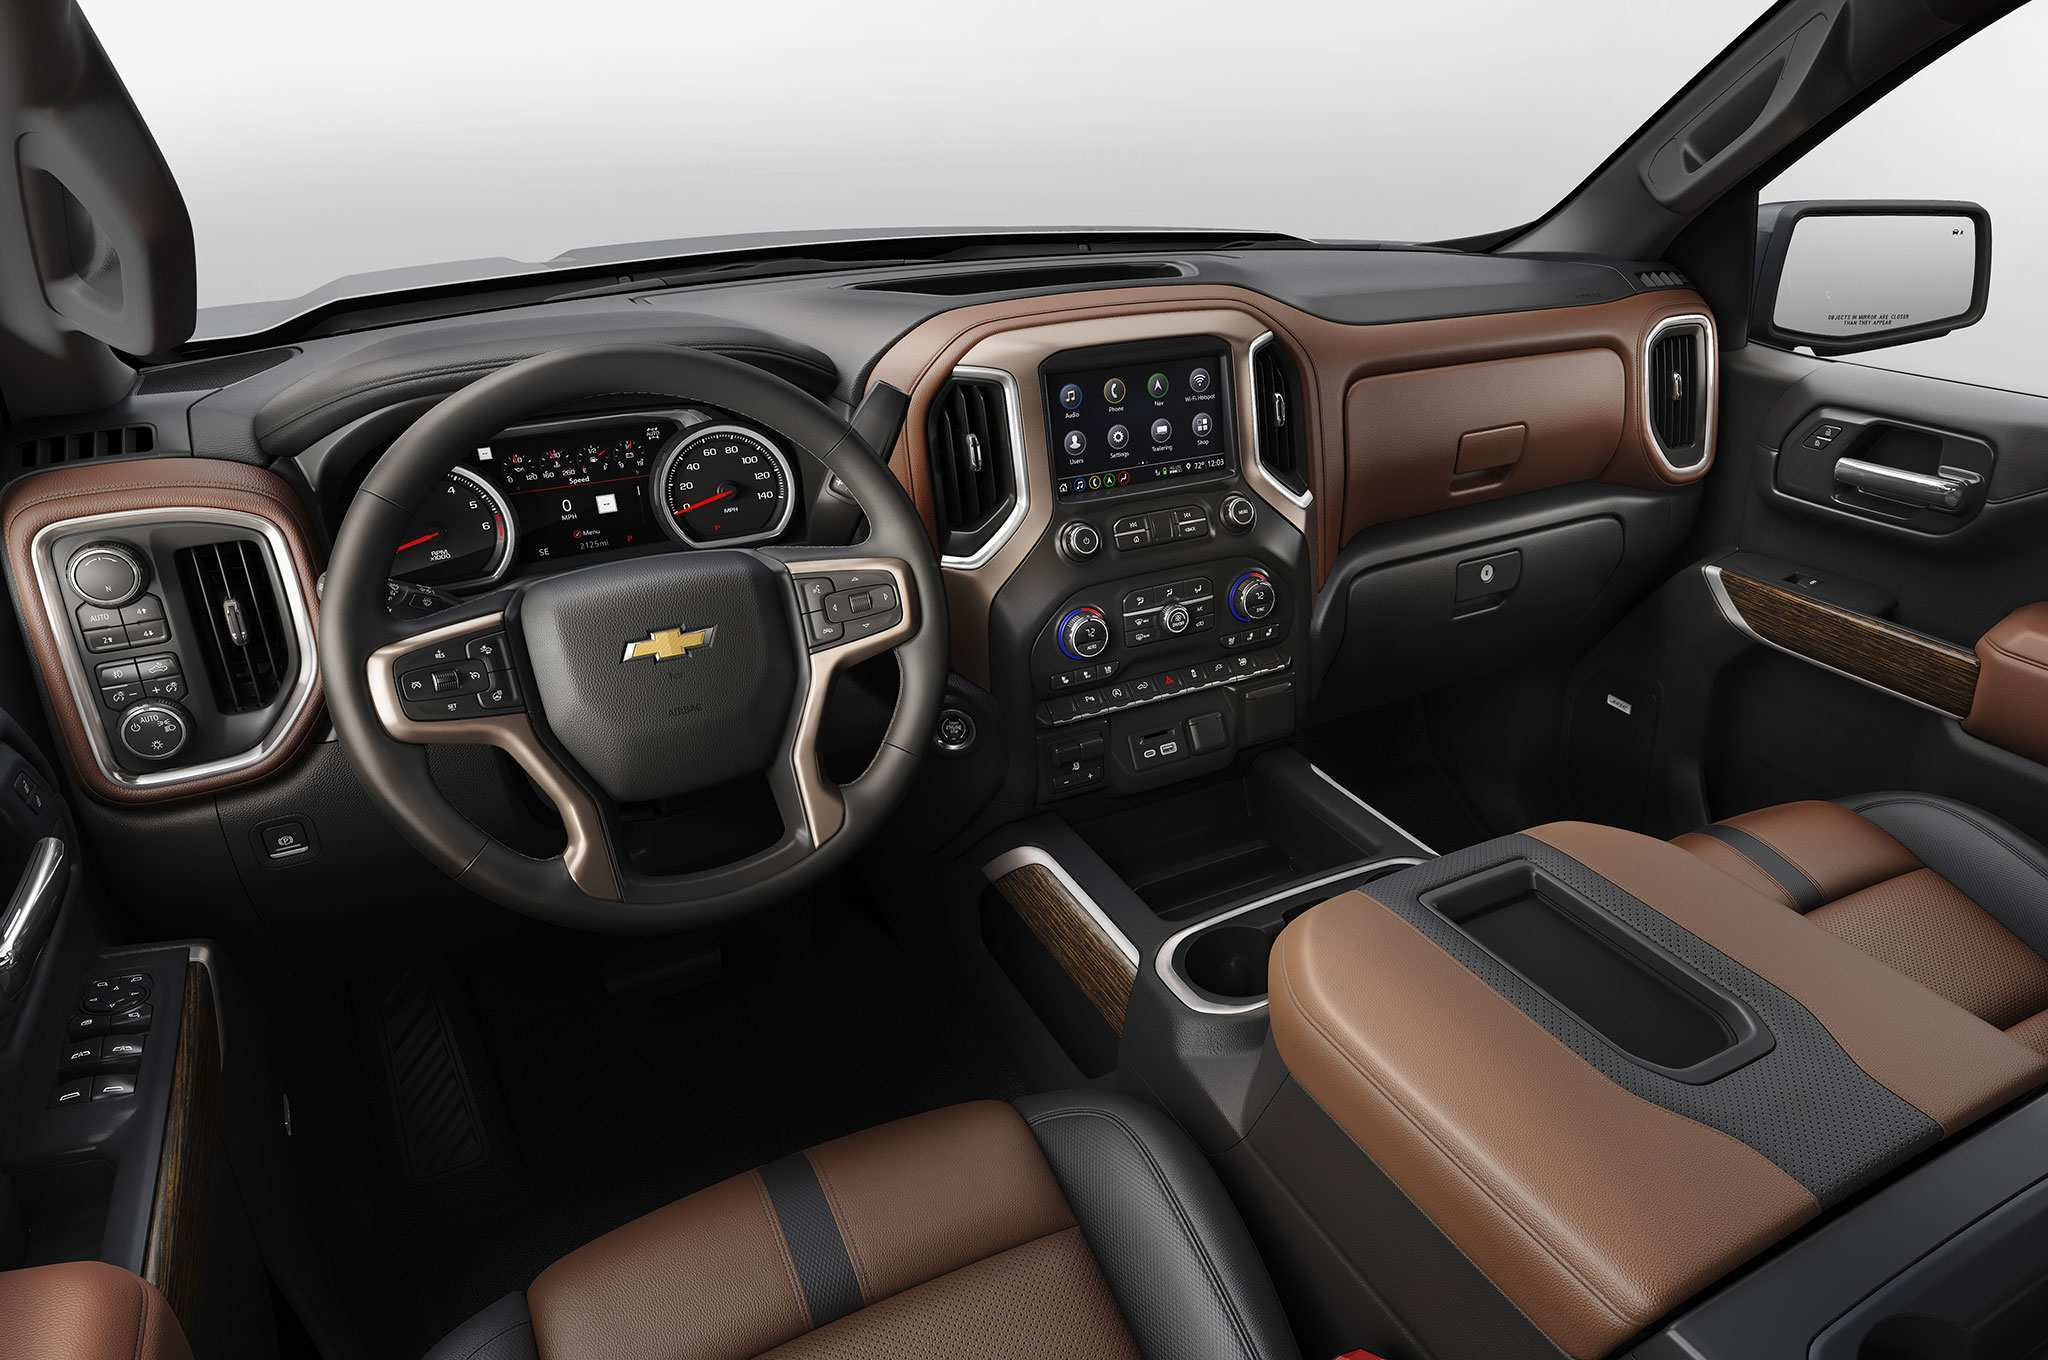 27 Concept of 2019 Chevrolet High Country Price Reviews with 2019 Chevrolet High Country Price